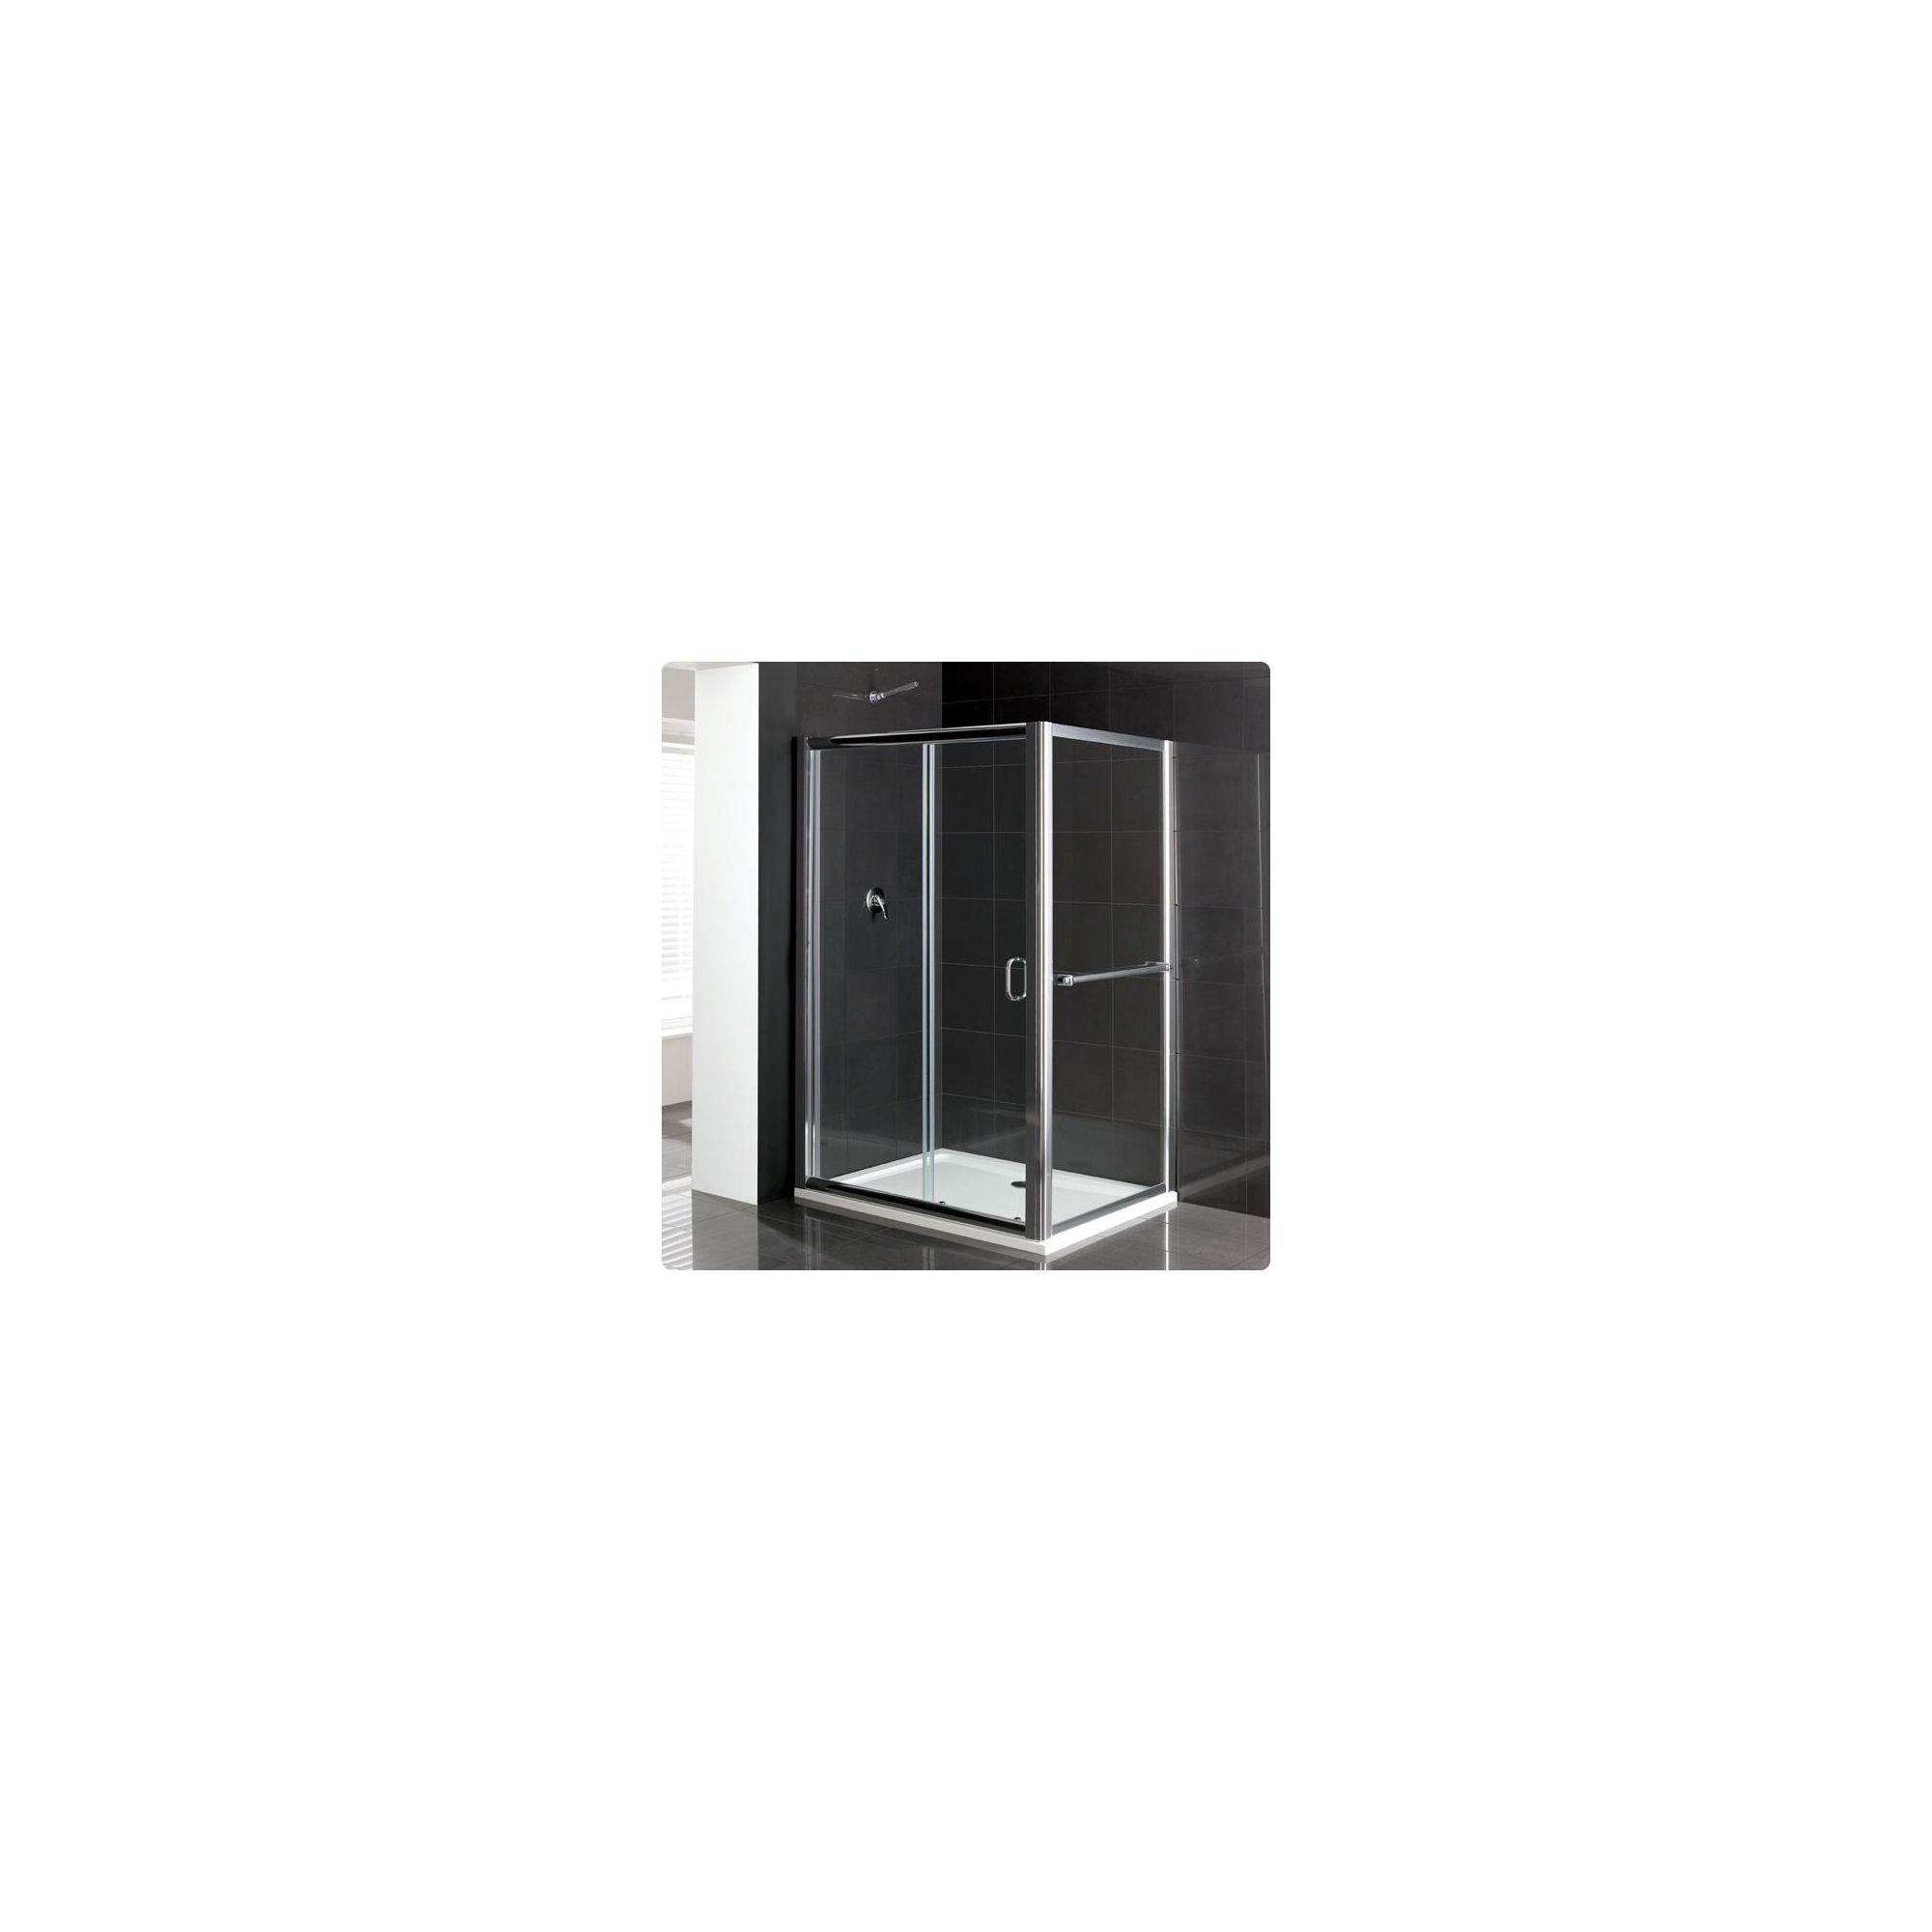 Duchy Elite Silver Sliding Door Shower Enclosure with Towel Rail, 1400mm x 900mm, Standard Tray, 6mm Glass at Tesco Direct